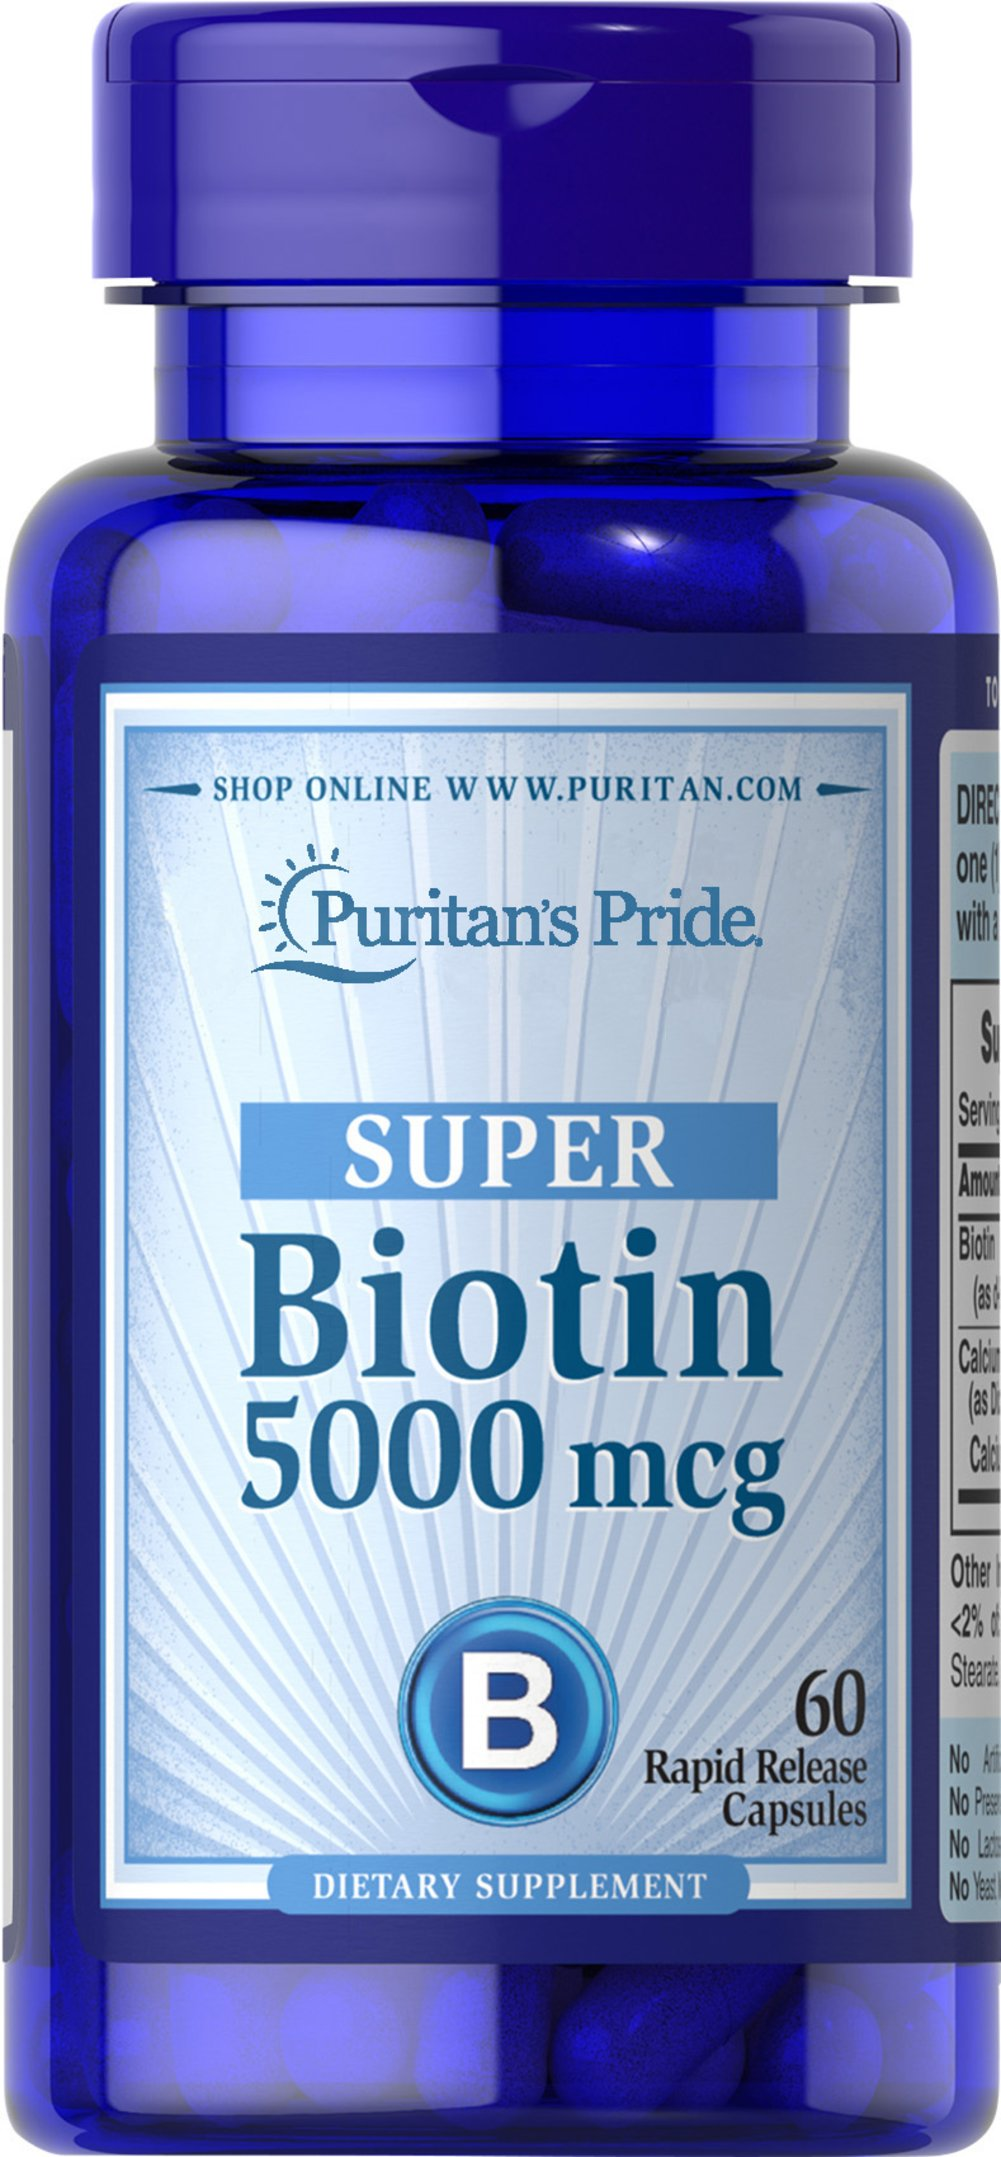 Biotin 5000 mcg <p>Biotin is a water-soluble B vitamin that can be found in foods such as oatmeal and soy. Biotin assists in energy metabolism in cells.** It is involved in certain reactions that use energy in the body.** These include reactions involved with carbohydrate and fat metabolism.** This important B vitamin helps to support healthy skin, hair and nails so you can look and feel your best.**</p><p></p><p></p> 60 Capsules 5000 mcg $5.99